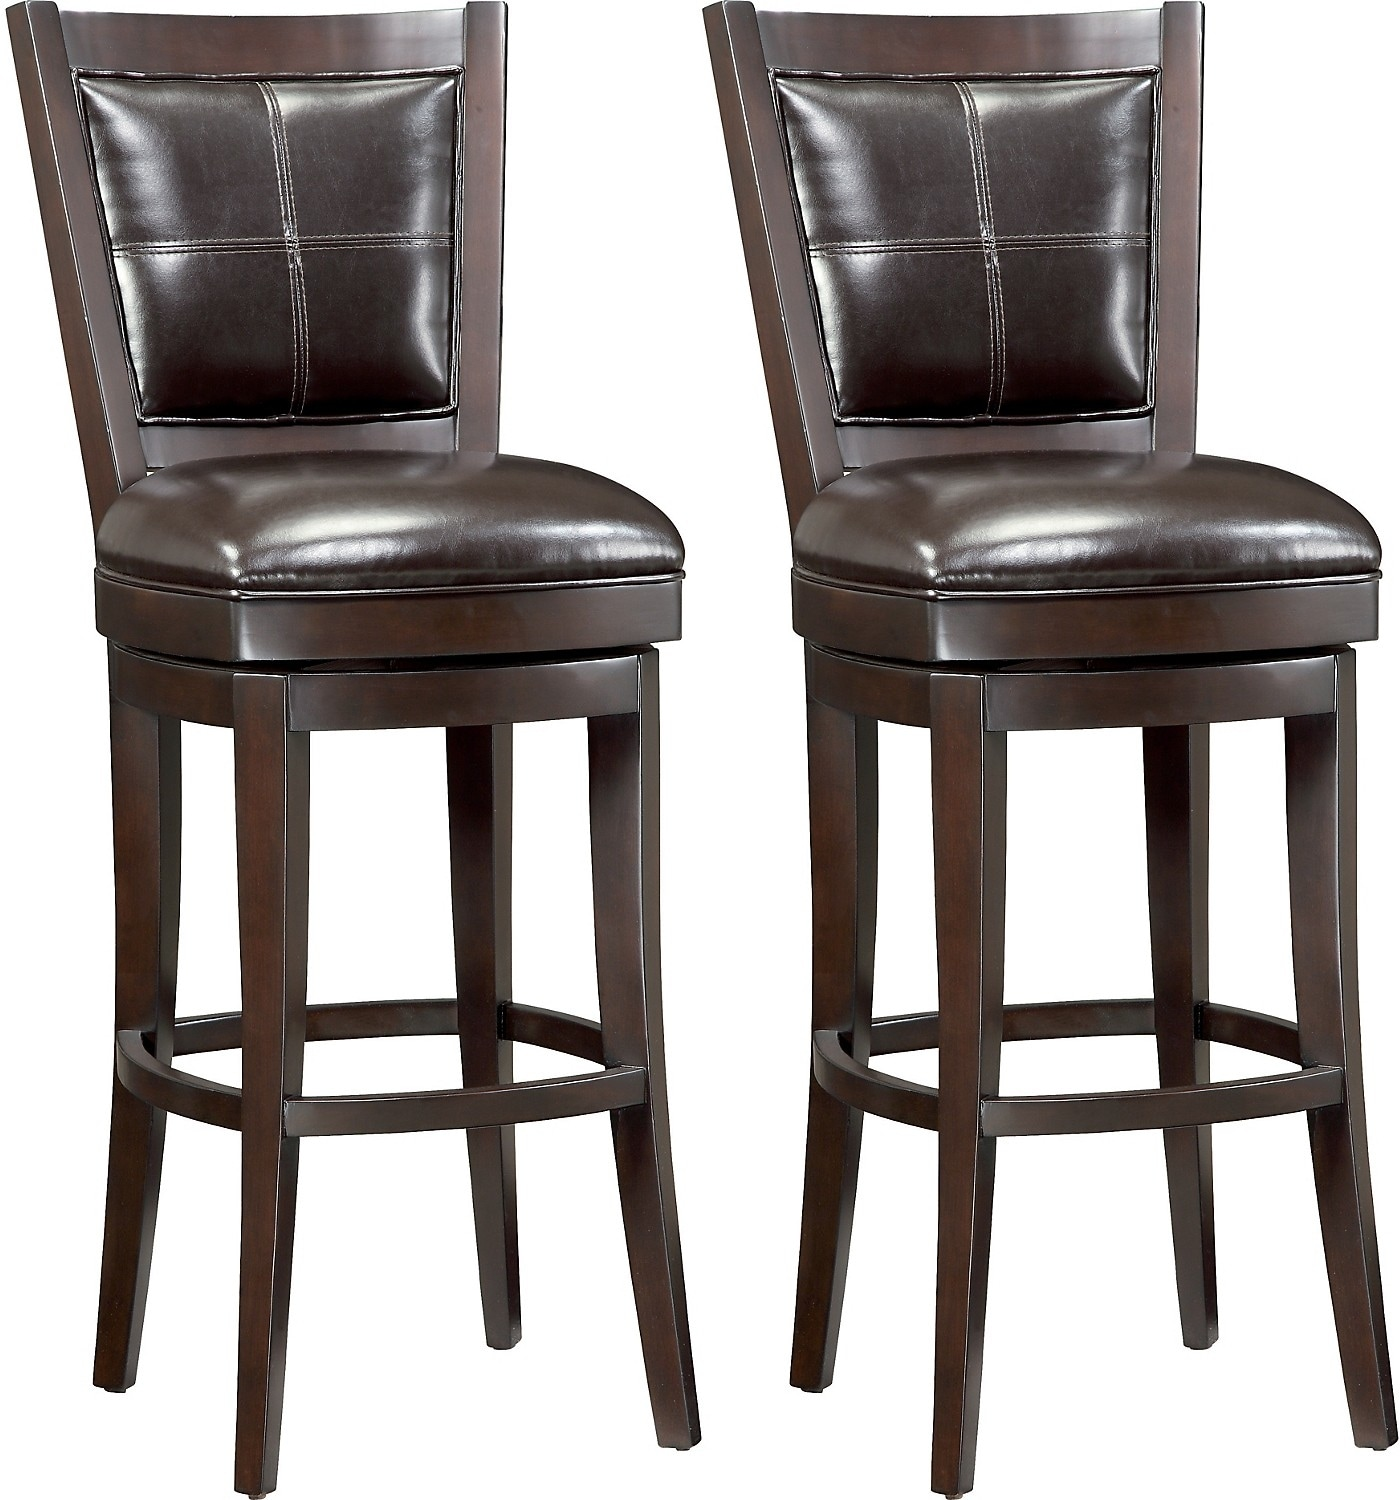 "Chase 30"" Bar Stools, Set of 2"